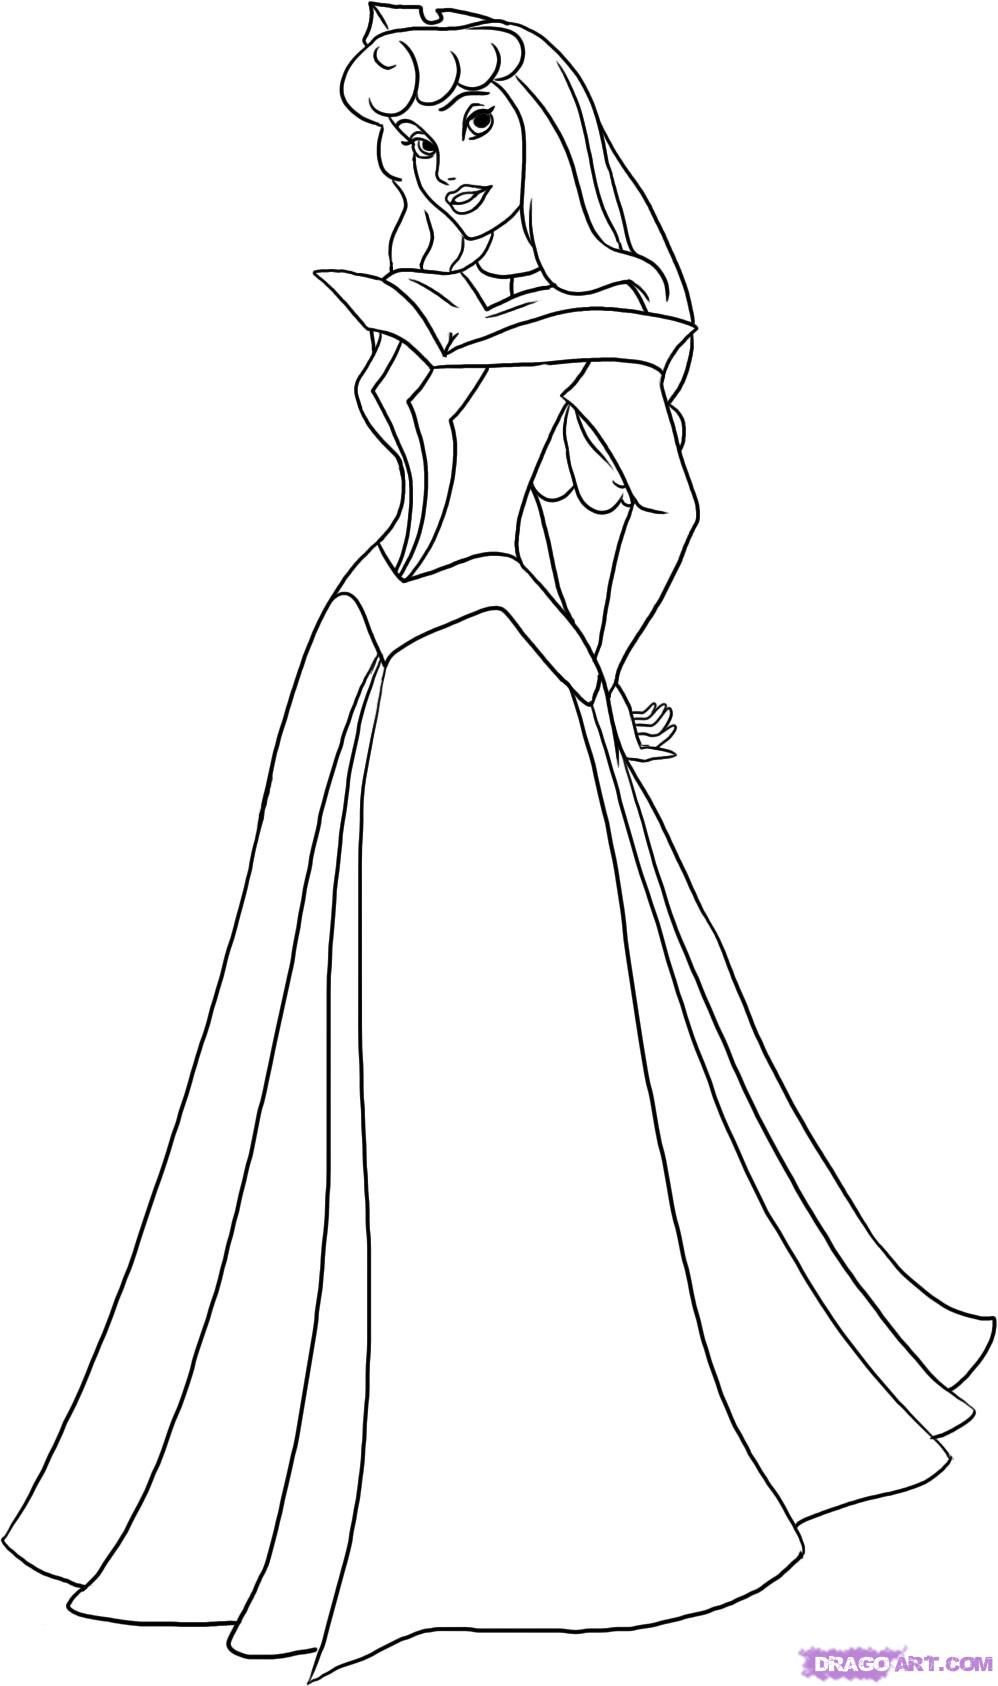 Sleeping Beauty Coloring Pages Free Coloring Pages Download | Xsibe ...